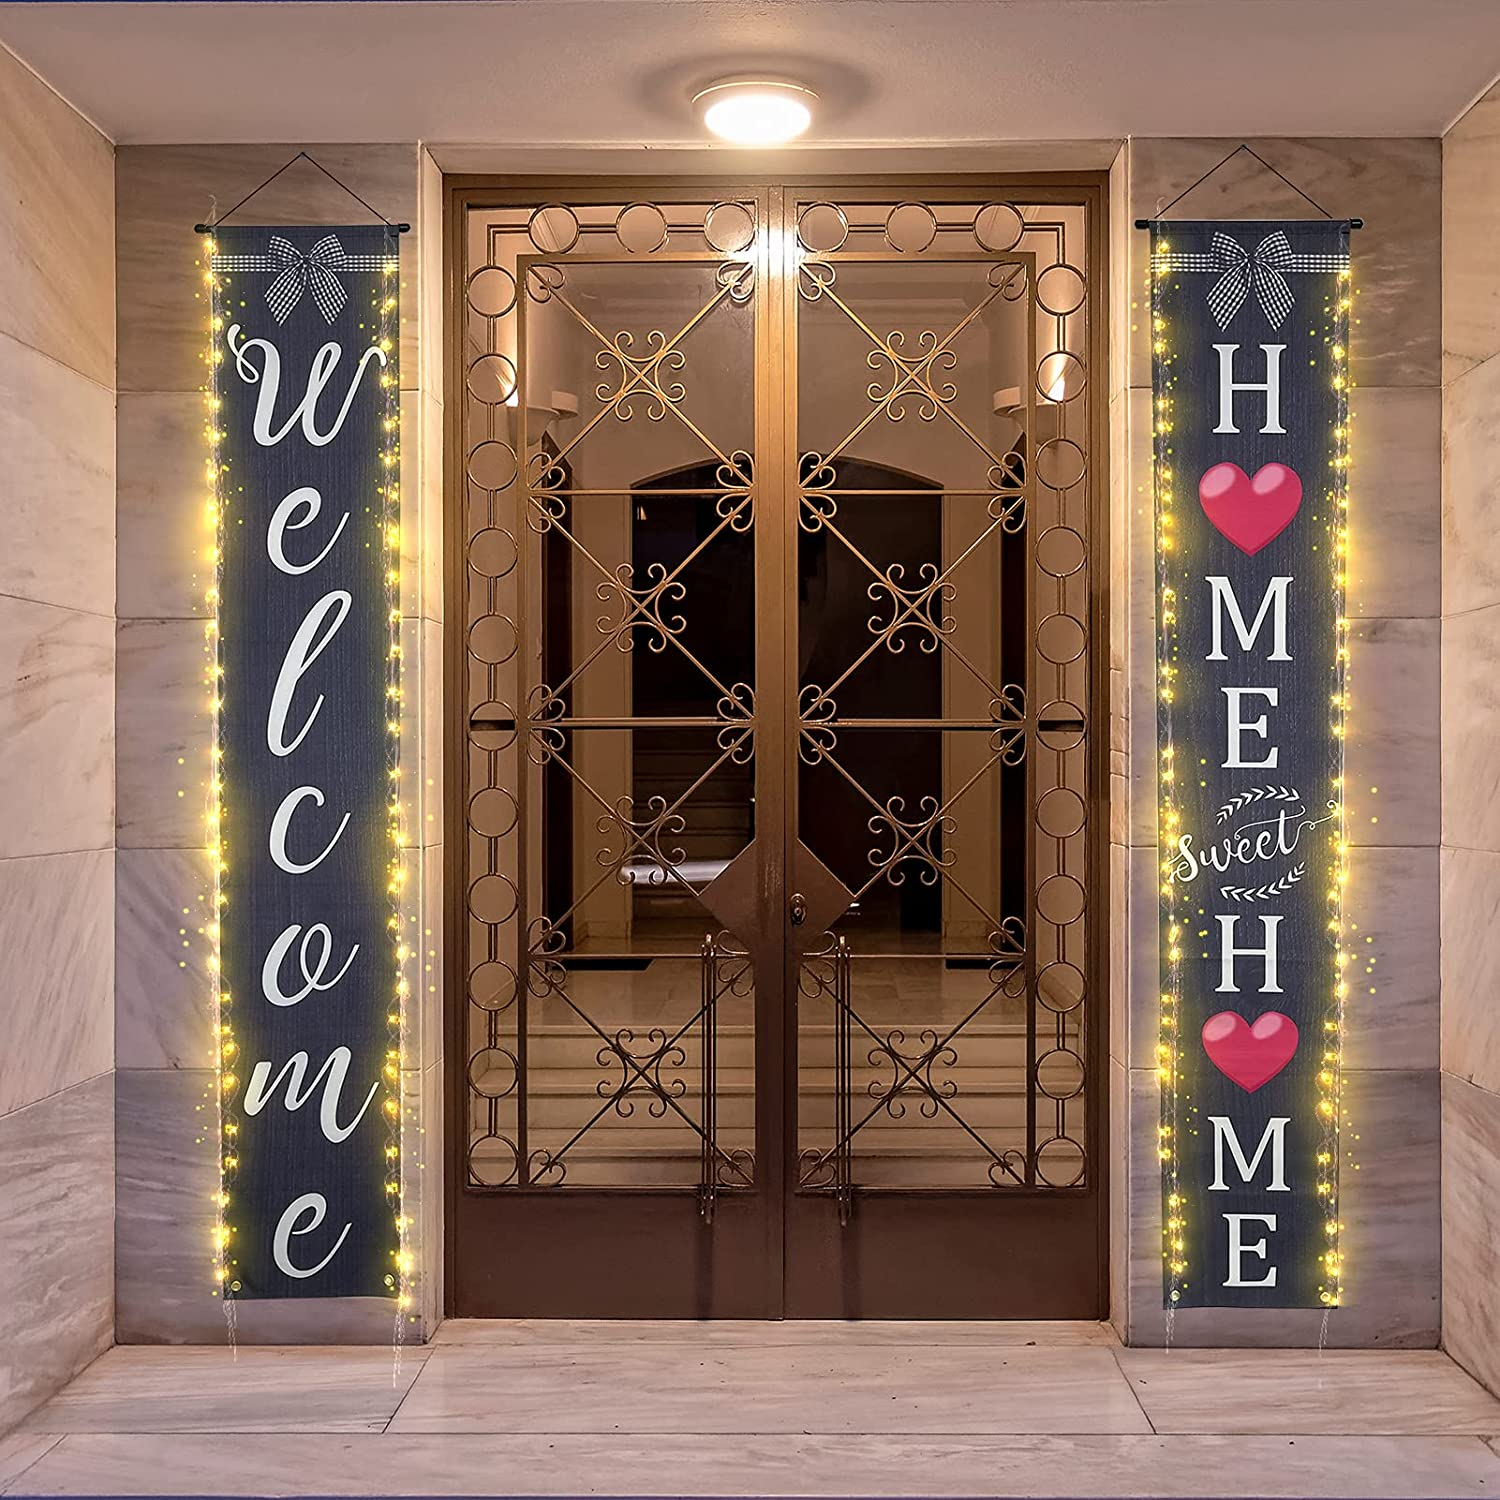 Trgowaul 2pcs Welcome Home Sweet Home Porch Sign, Front Door Sign with String Light, Welcome Sign Decor, Hanging Door Banner for Farmhouse, Outdoor, Rustic, Front Porch (Welcome Porch Sign)